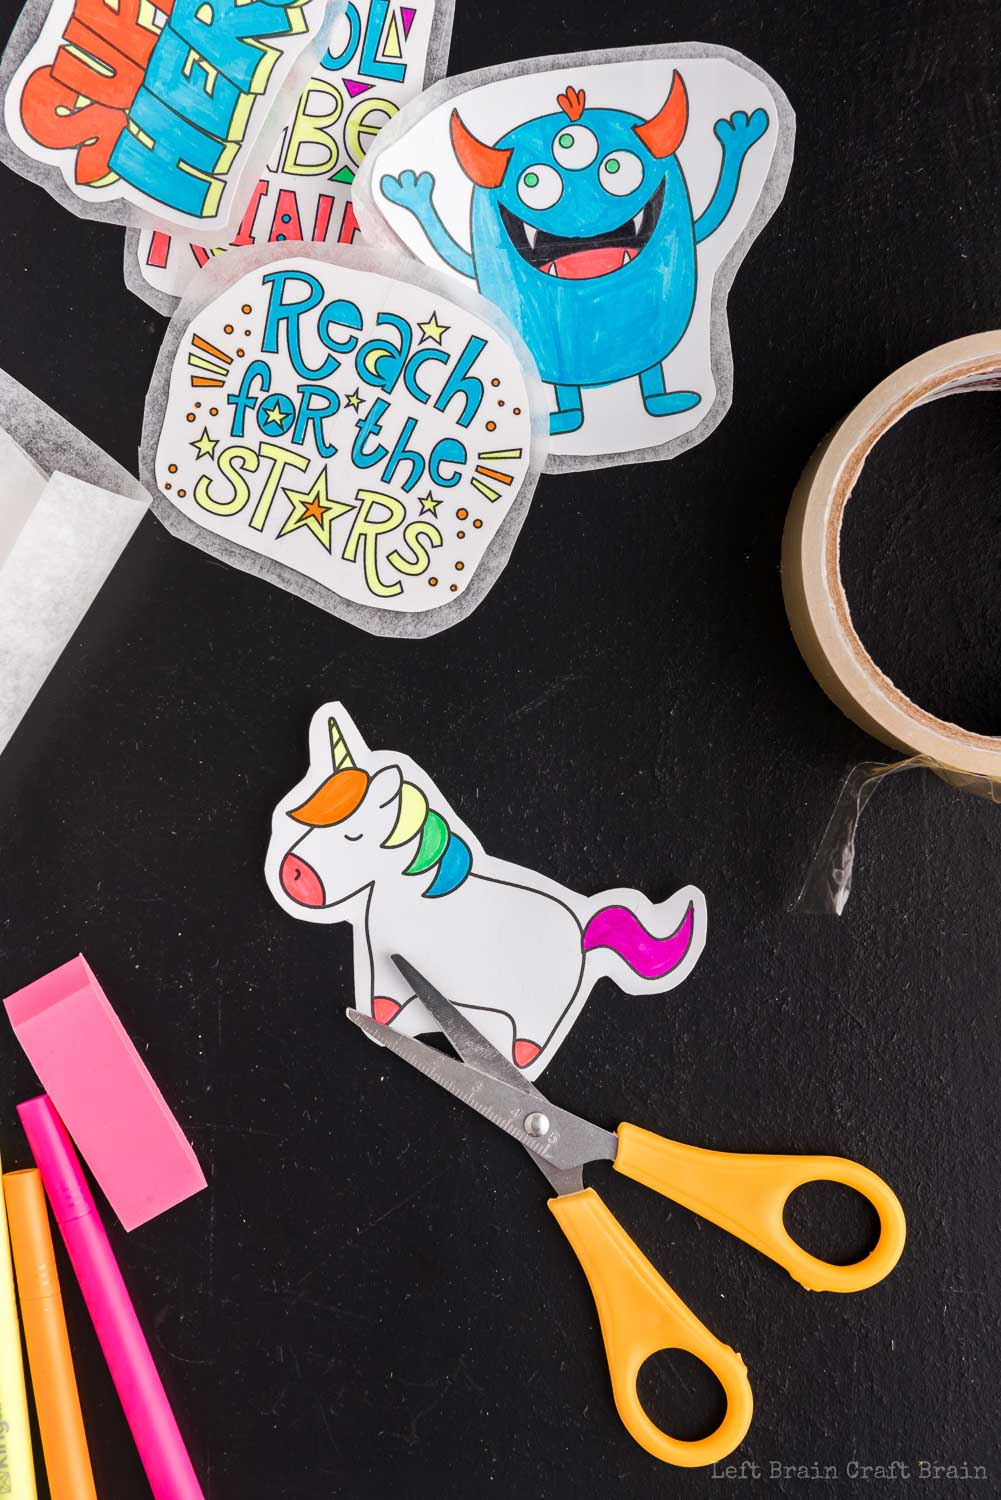 cut out the unicorn for the DIY stickers - Make your own DIY stickers with a super easy process using basic supplies. Kids will love this activity. They're fun to add to presents, too.